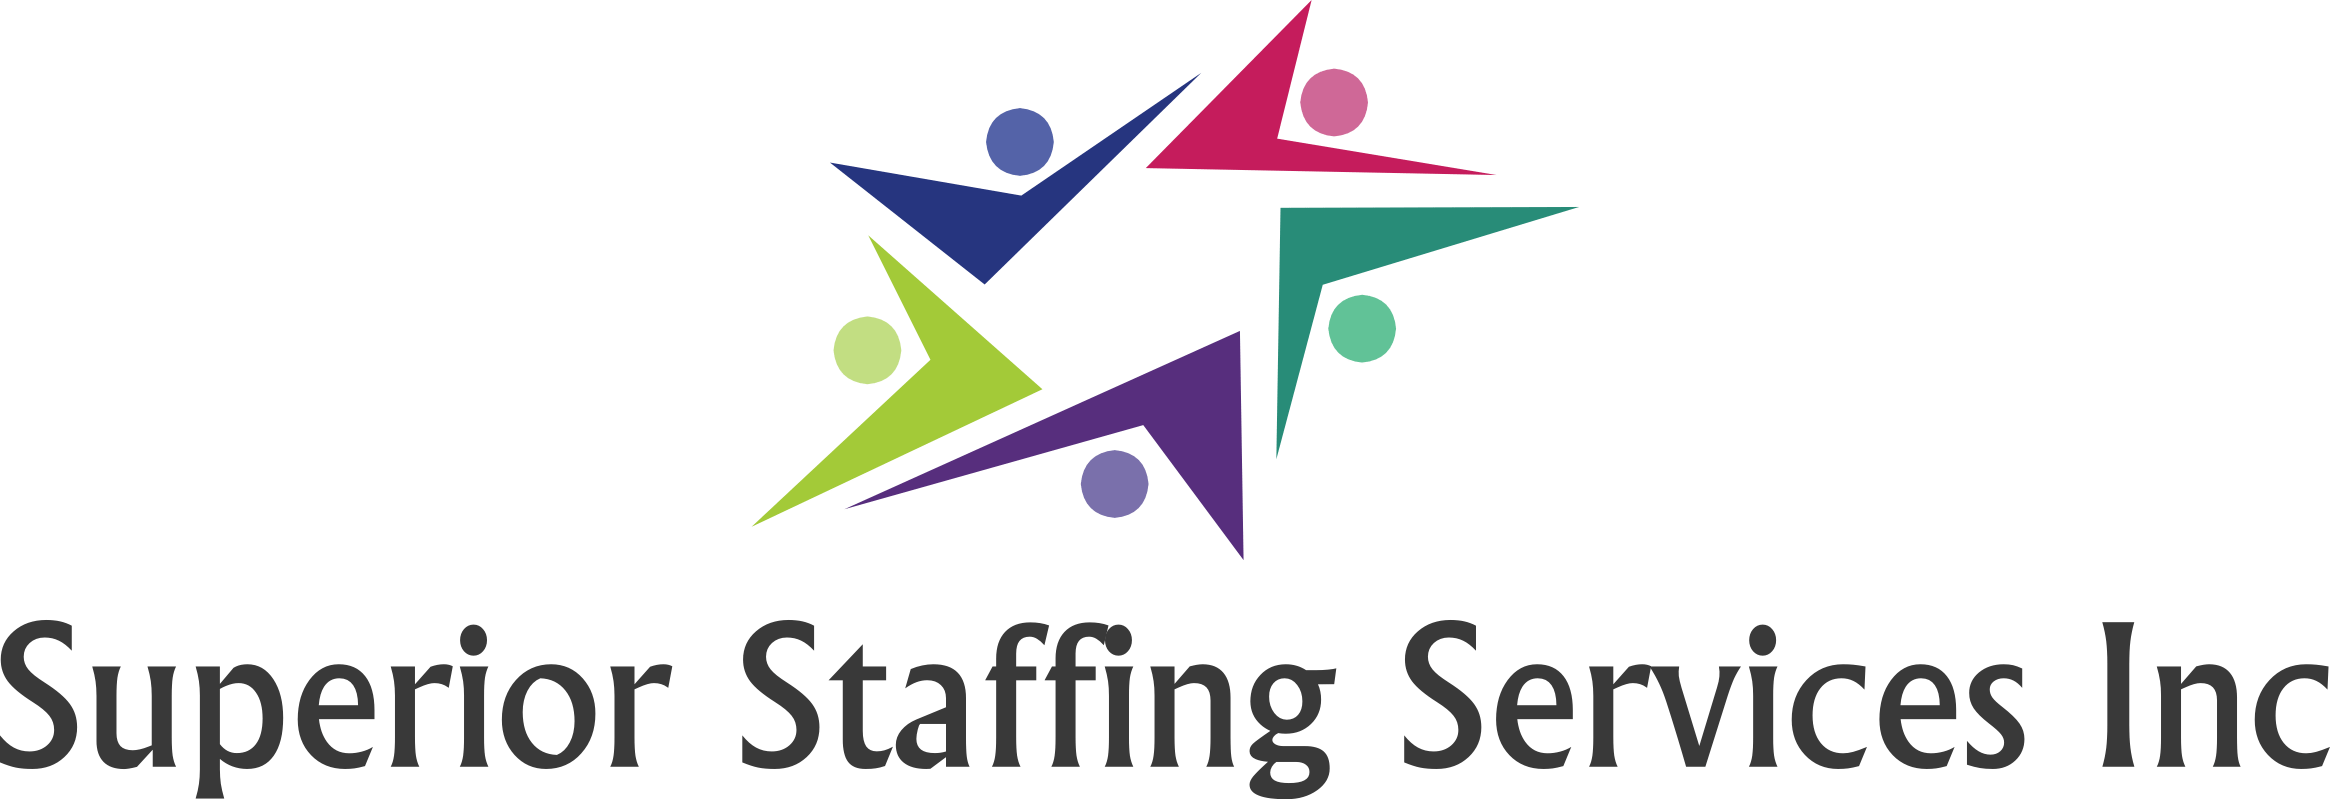 Superior Staffing Services IncTemporary StaffingBiloxi